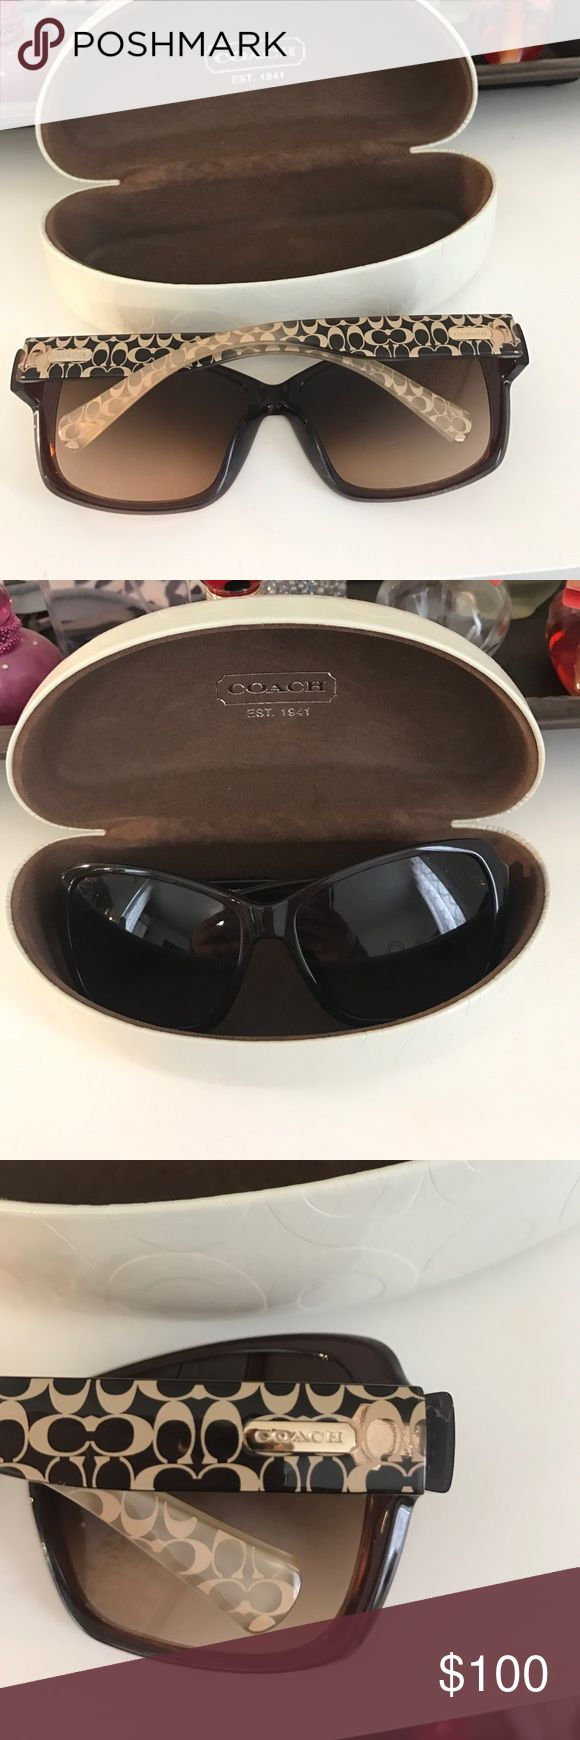 """Coach sunglasses Brown sunglasses with the Coach letter """"C"""" down the sides Coach Accessories Sunglasses"""